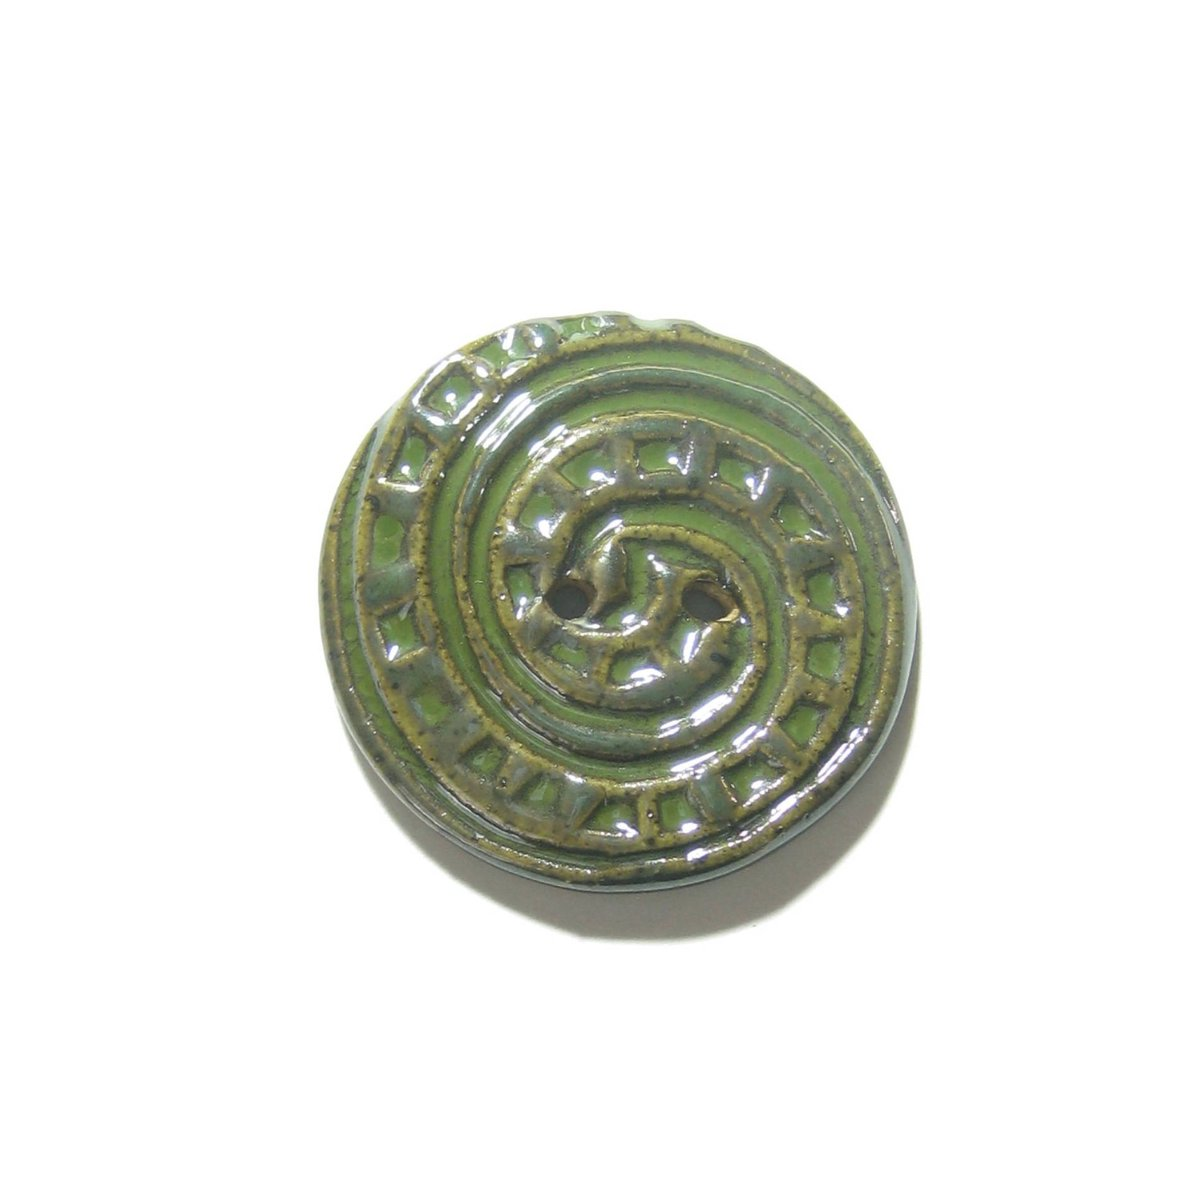 Large Rustic Round Seaweed Green Spiral Stoneware Button, (1) Two Hol…  http:// tuppu.net/fdd698f4  &nbsp;   #epiconetsy #etsymntt<br>http://pic.twitter.com/RLZFpmMdxw